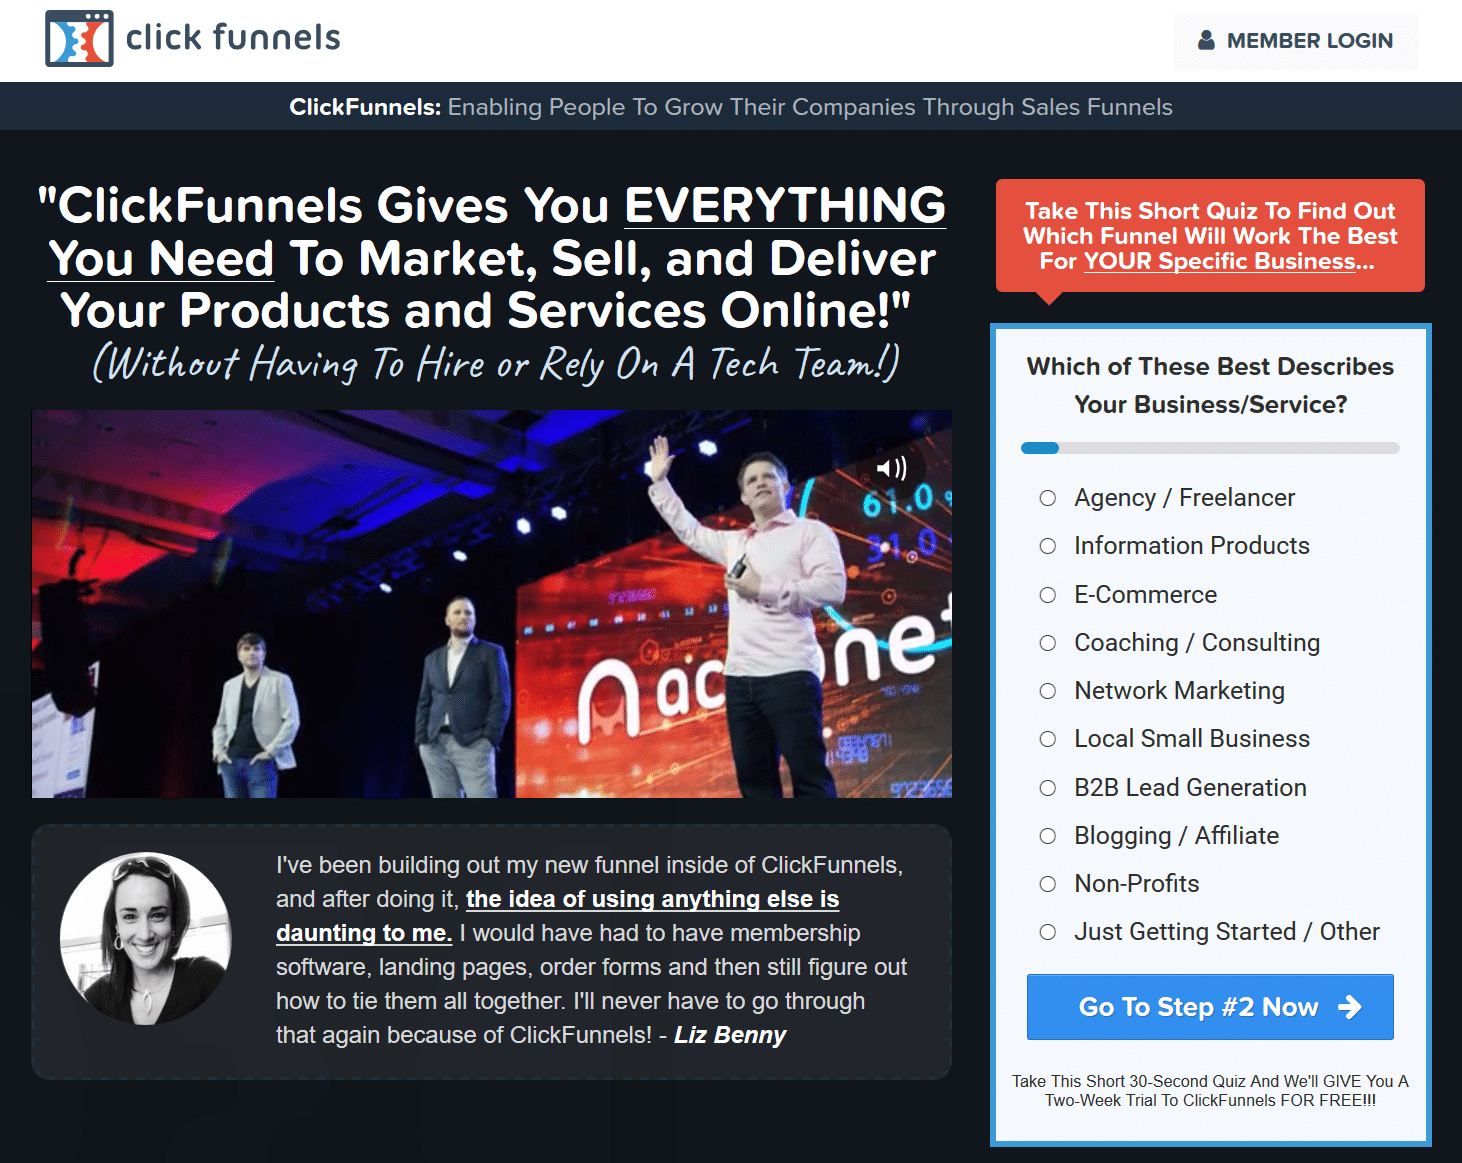 How To Quickly Move My Content From Clickfunnels To Optimize Press